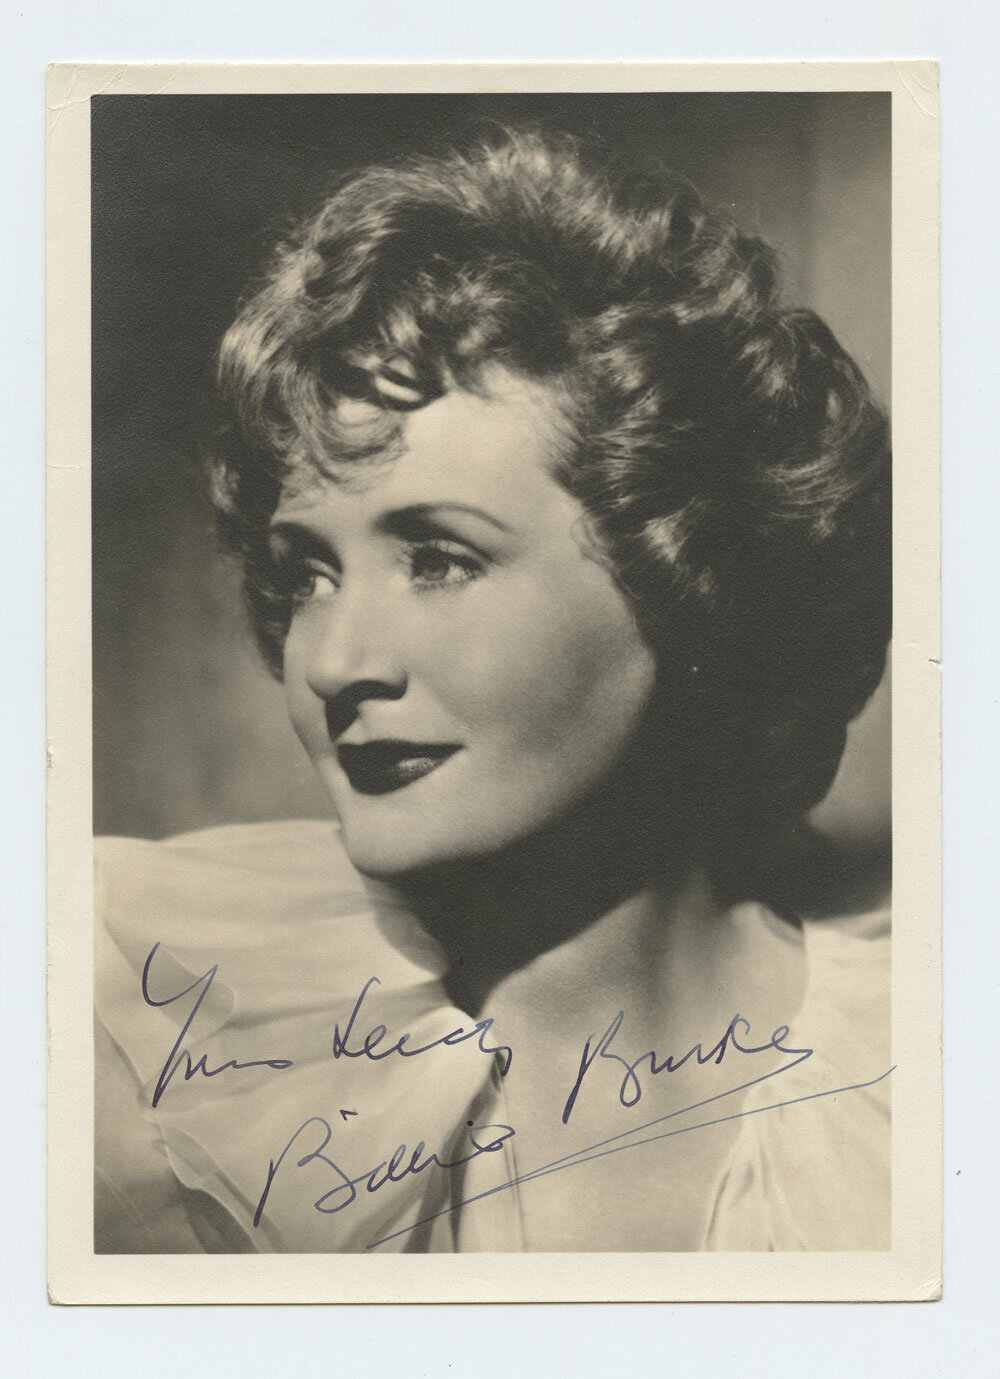 Billie Burke Photo 1940s Autographed Inscribed